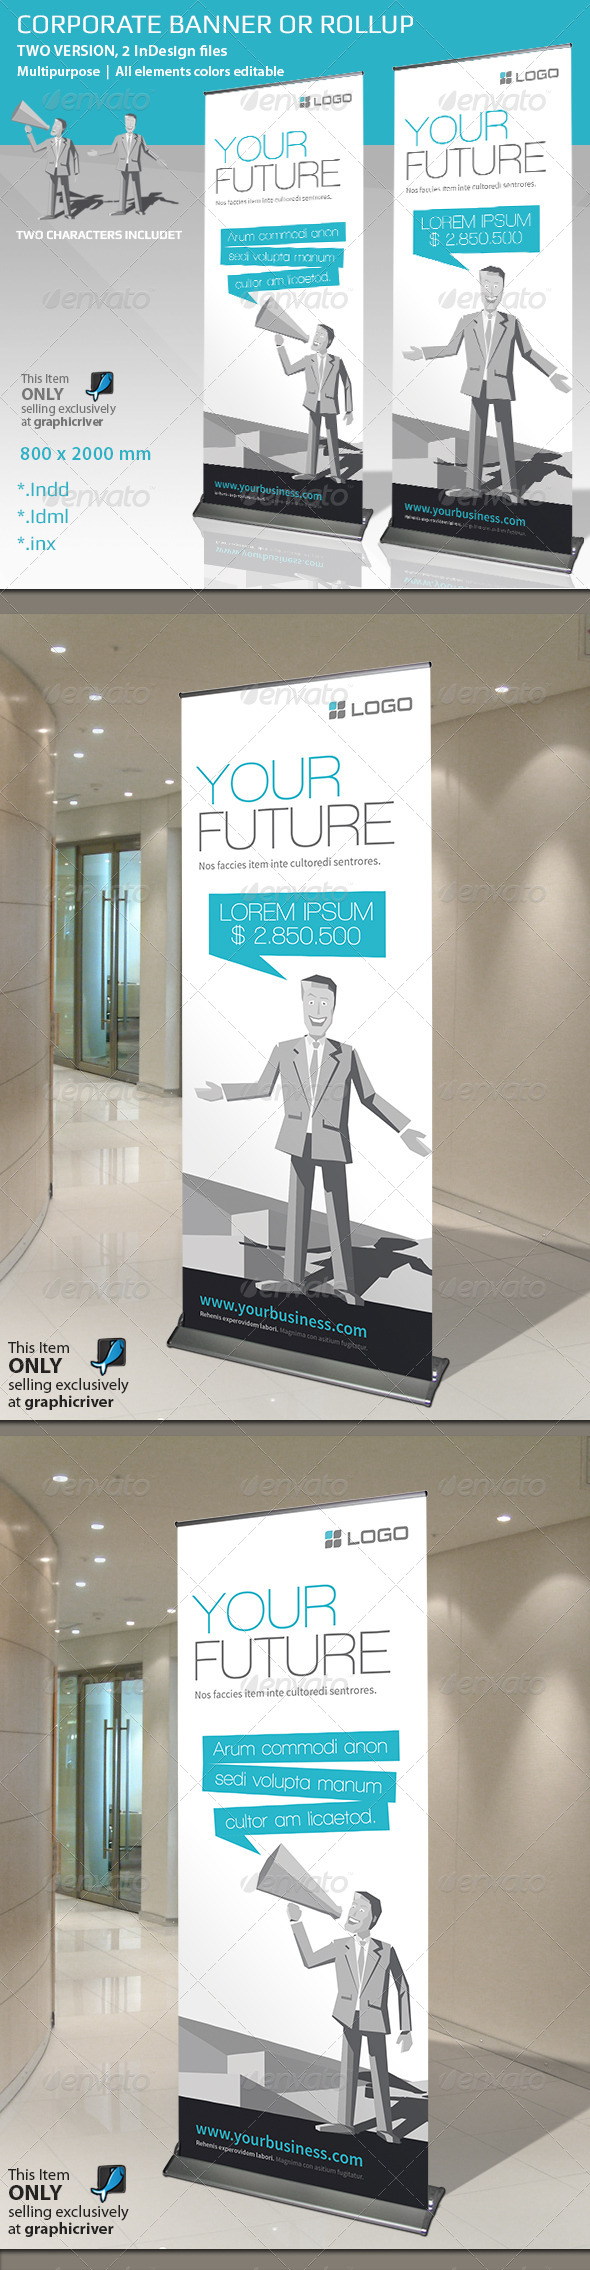 GraphicRiver Corporate Banner or Roll-up 6815191